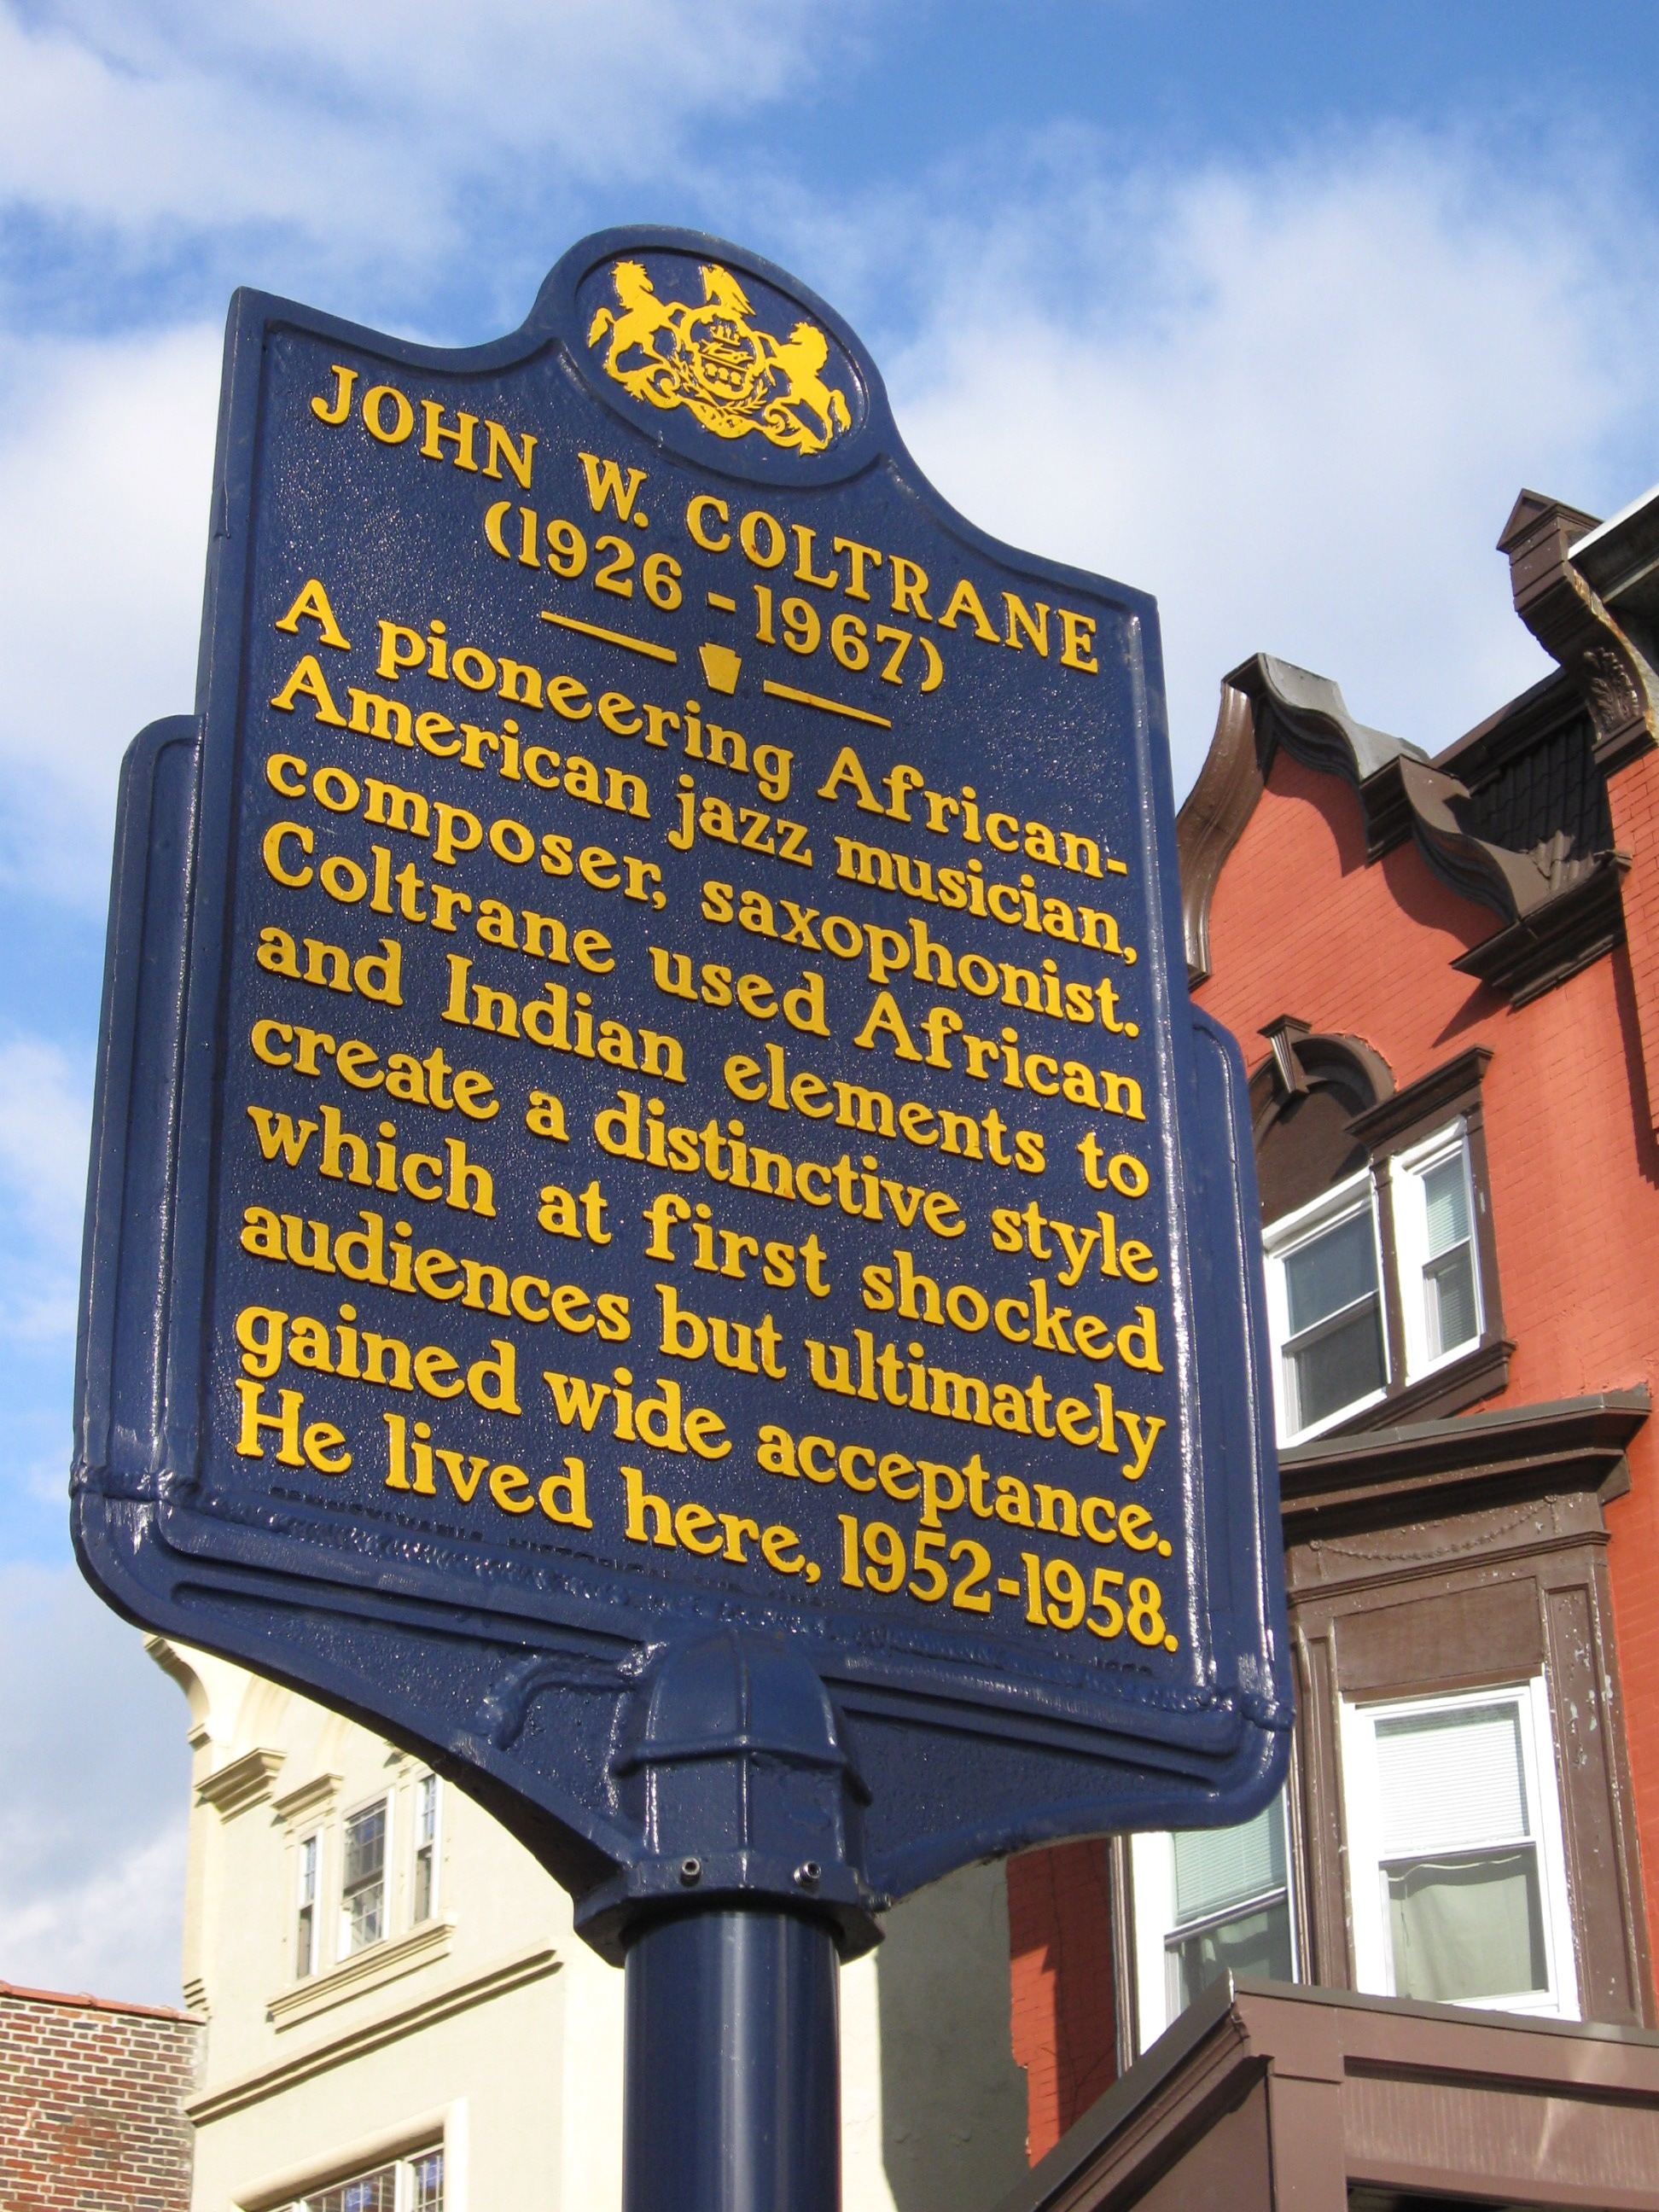 The historical marker placed in front of Trane's former home after it was designated a National Historic Landmark in 1999.